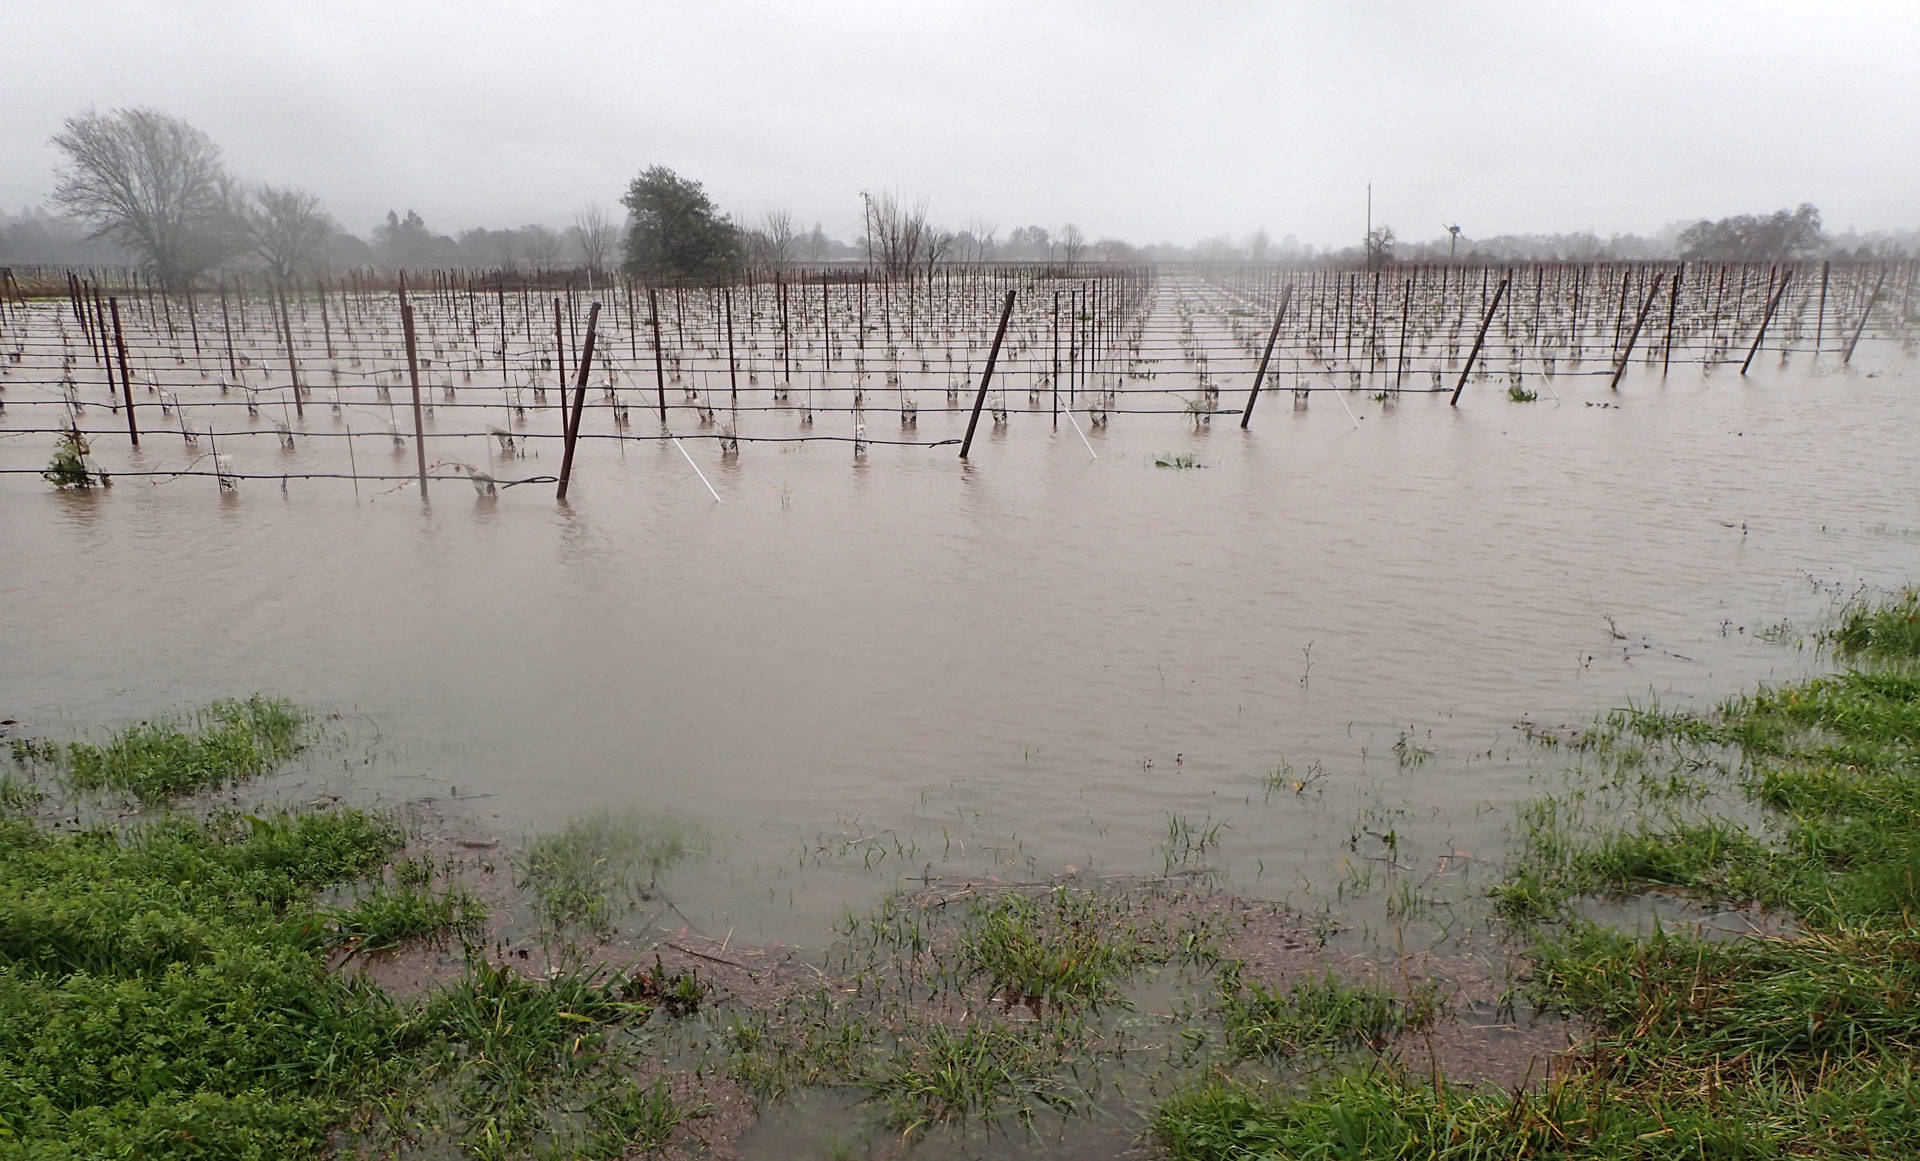 Flooded vineyards along Highway 29 in the Napa Valley after three days of rain, on Sunday, Jan. 8, 2017.  Craig Miller/KQED